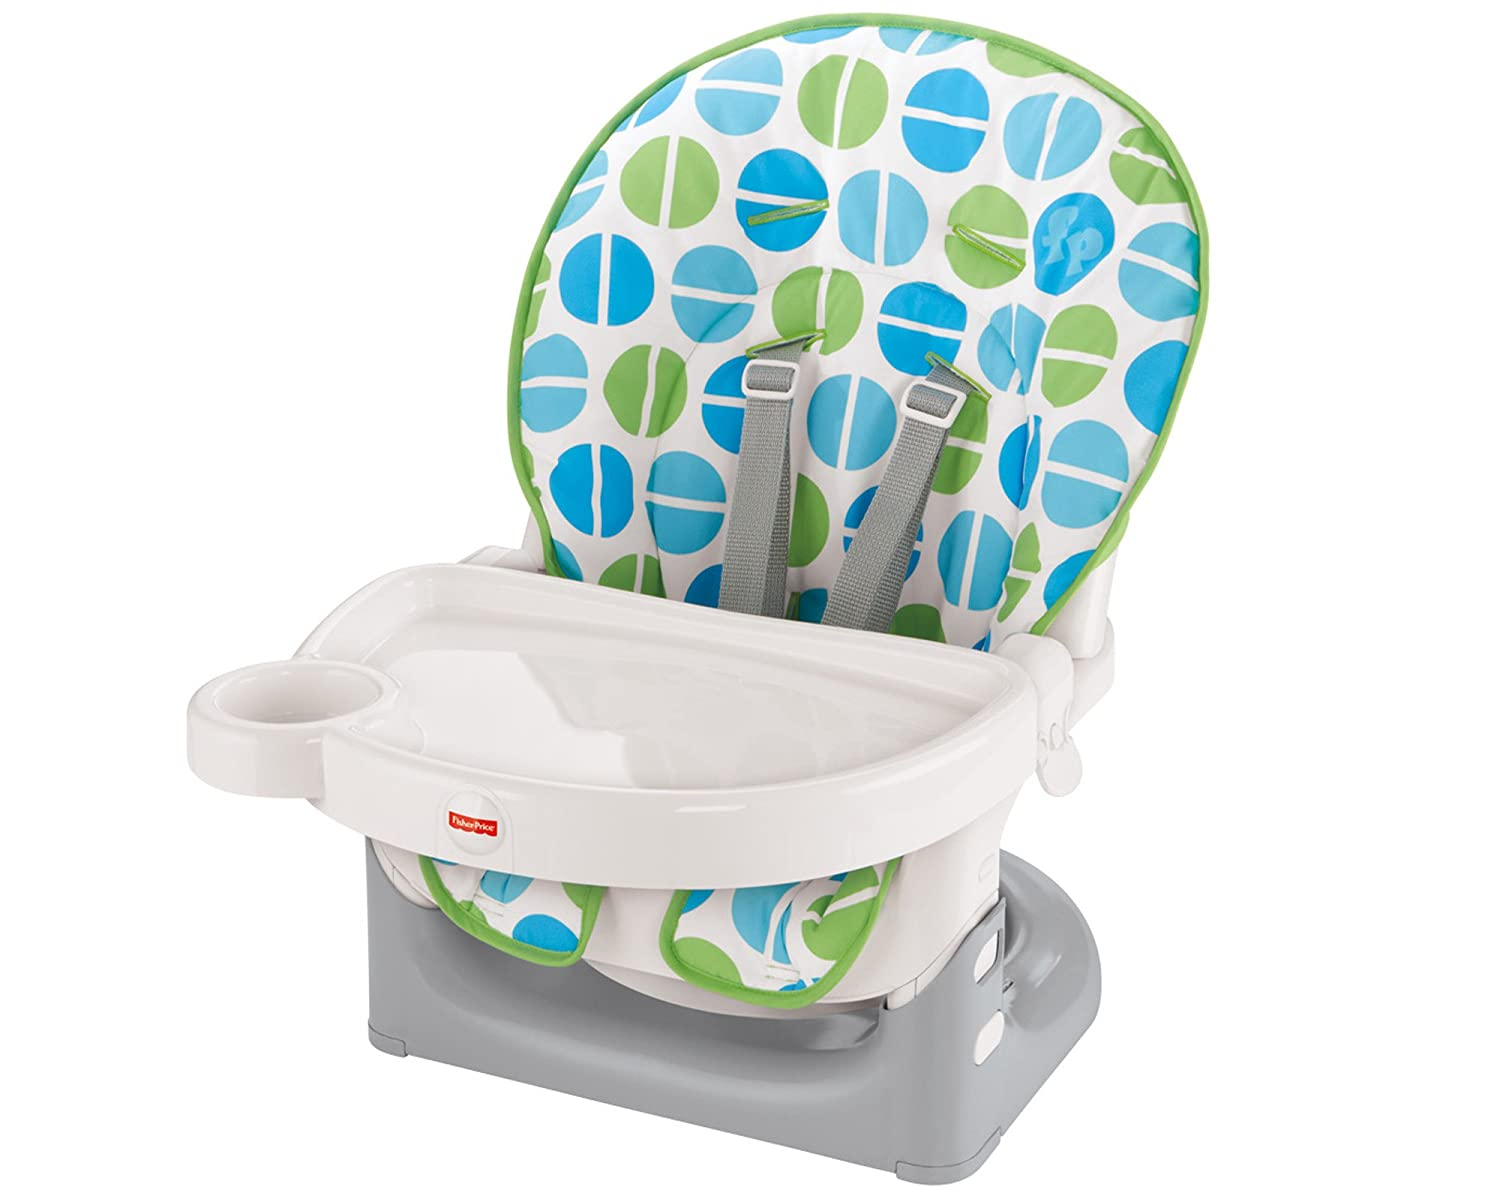 Fisher-Price Space Saver High Chair: Amazon.co.uk: Baby